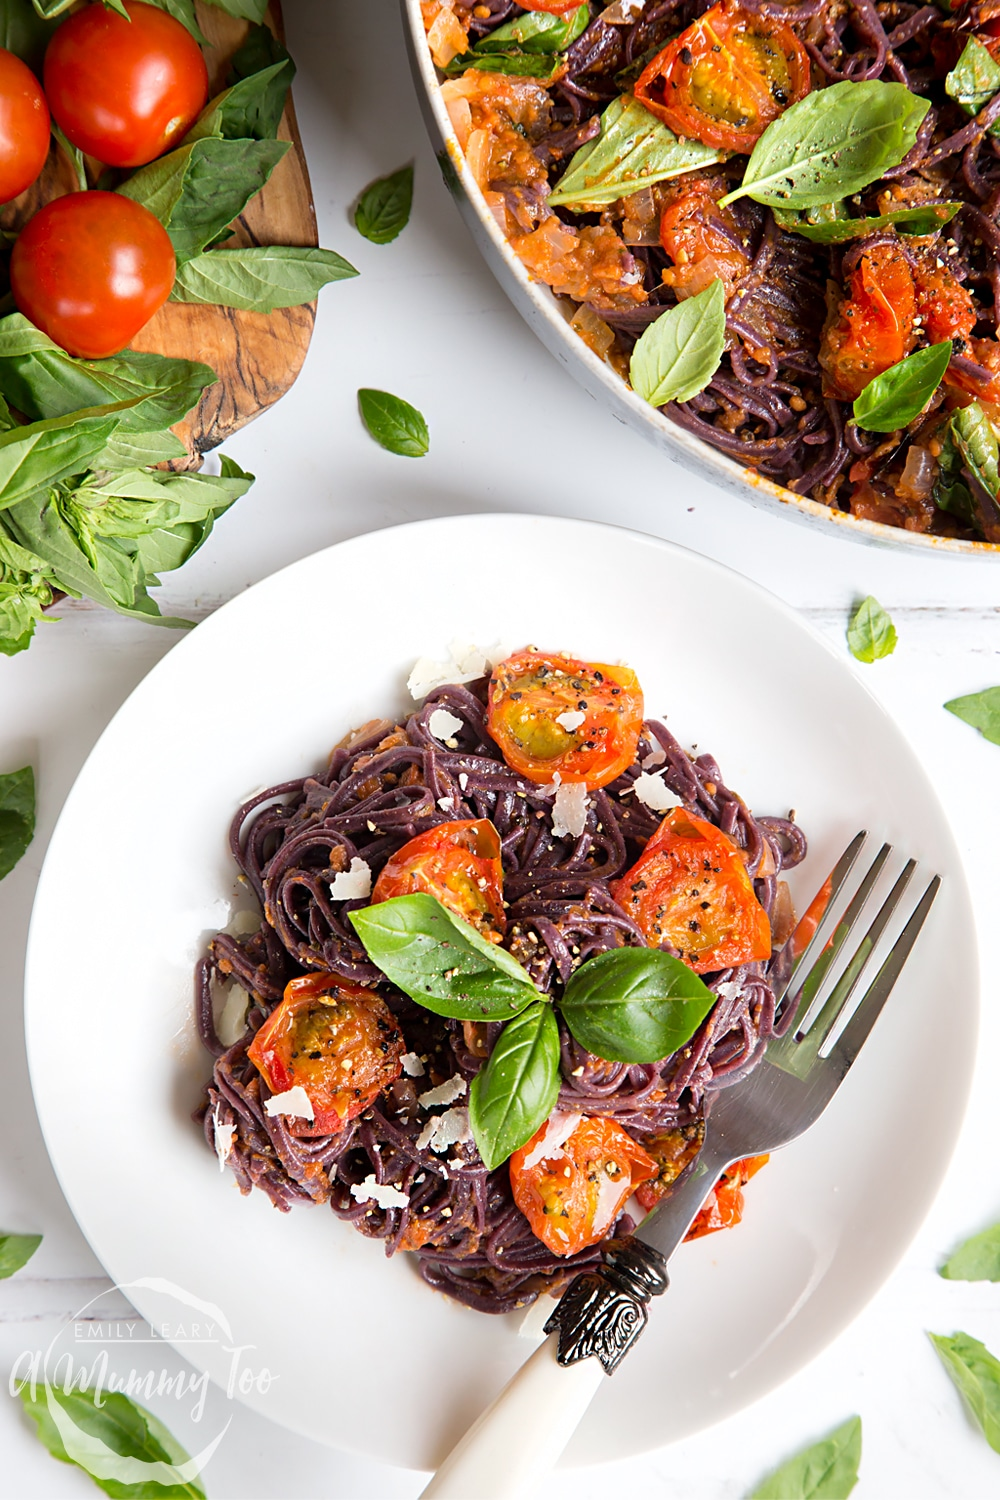 Top the black spaghetti with roasted tomatoes with shavings of vegan cheese, serve and enjoy!